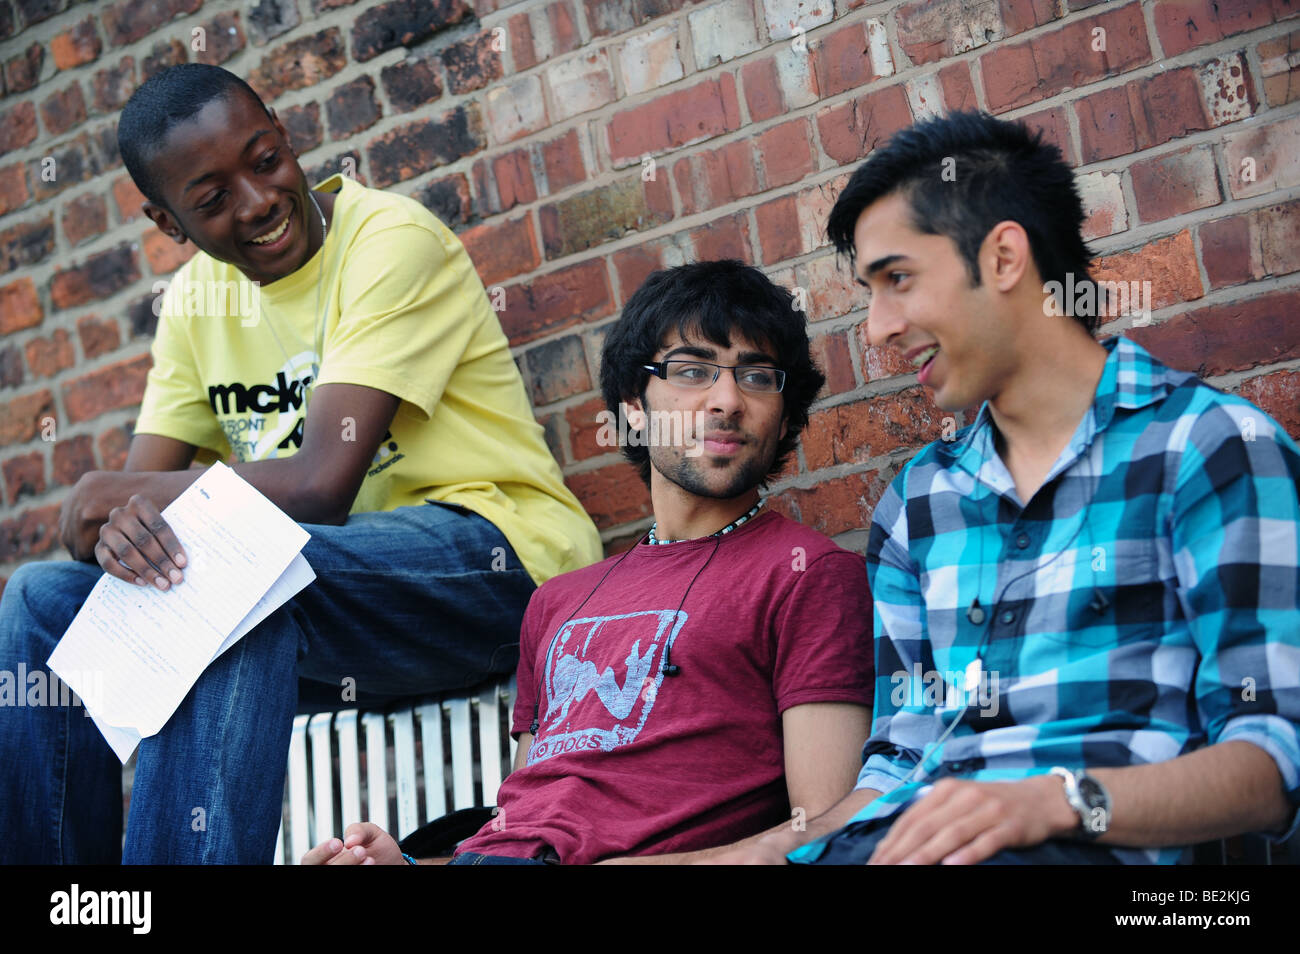 Students relax on break at a sixth form further education college - Stock Image